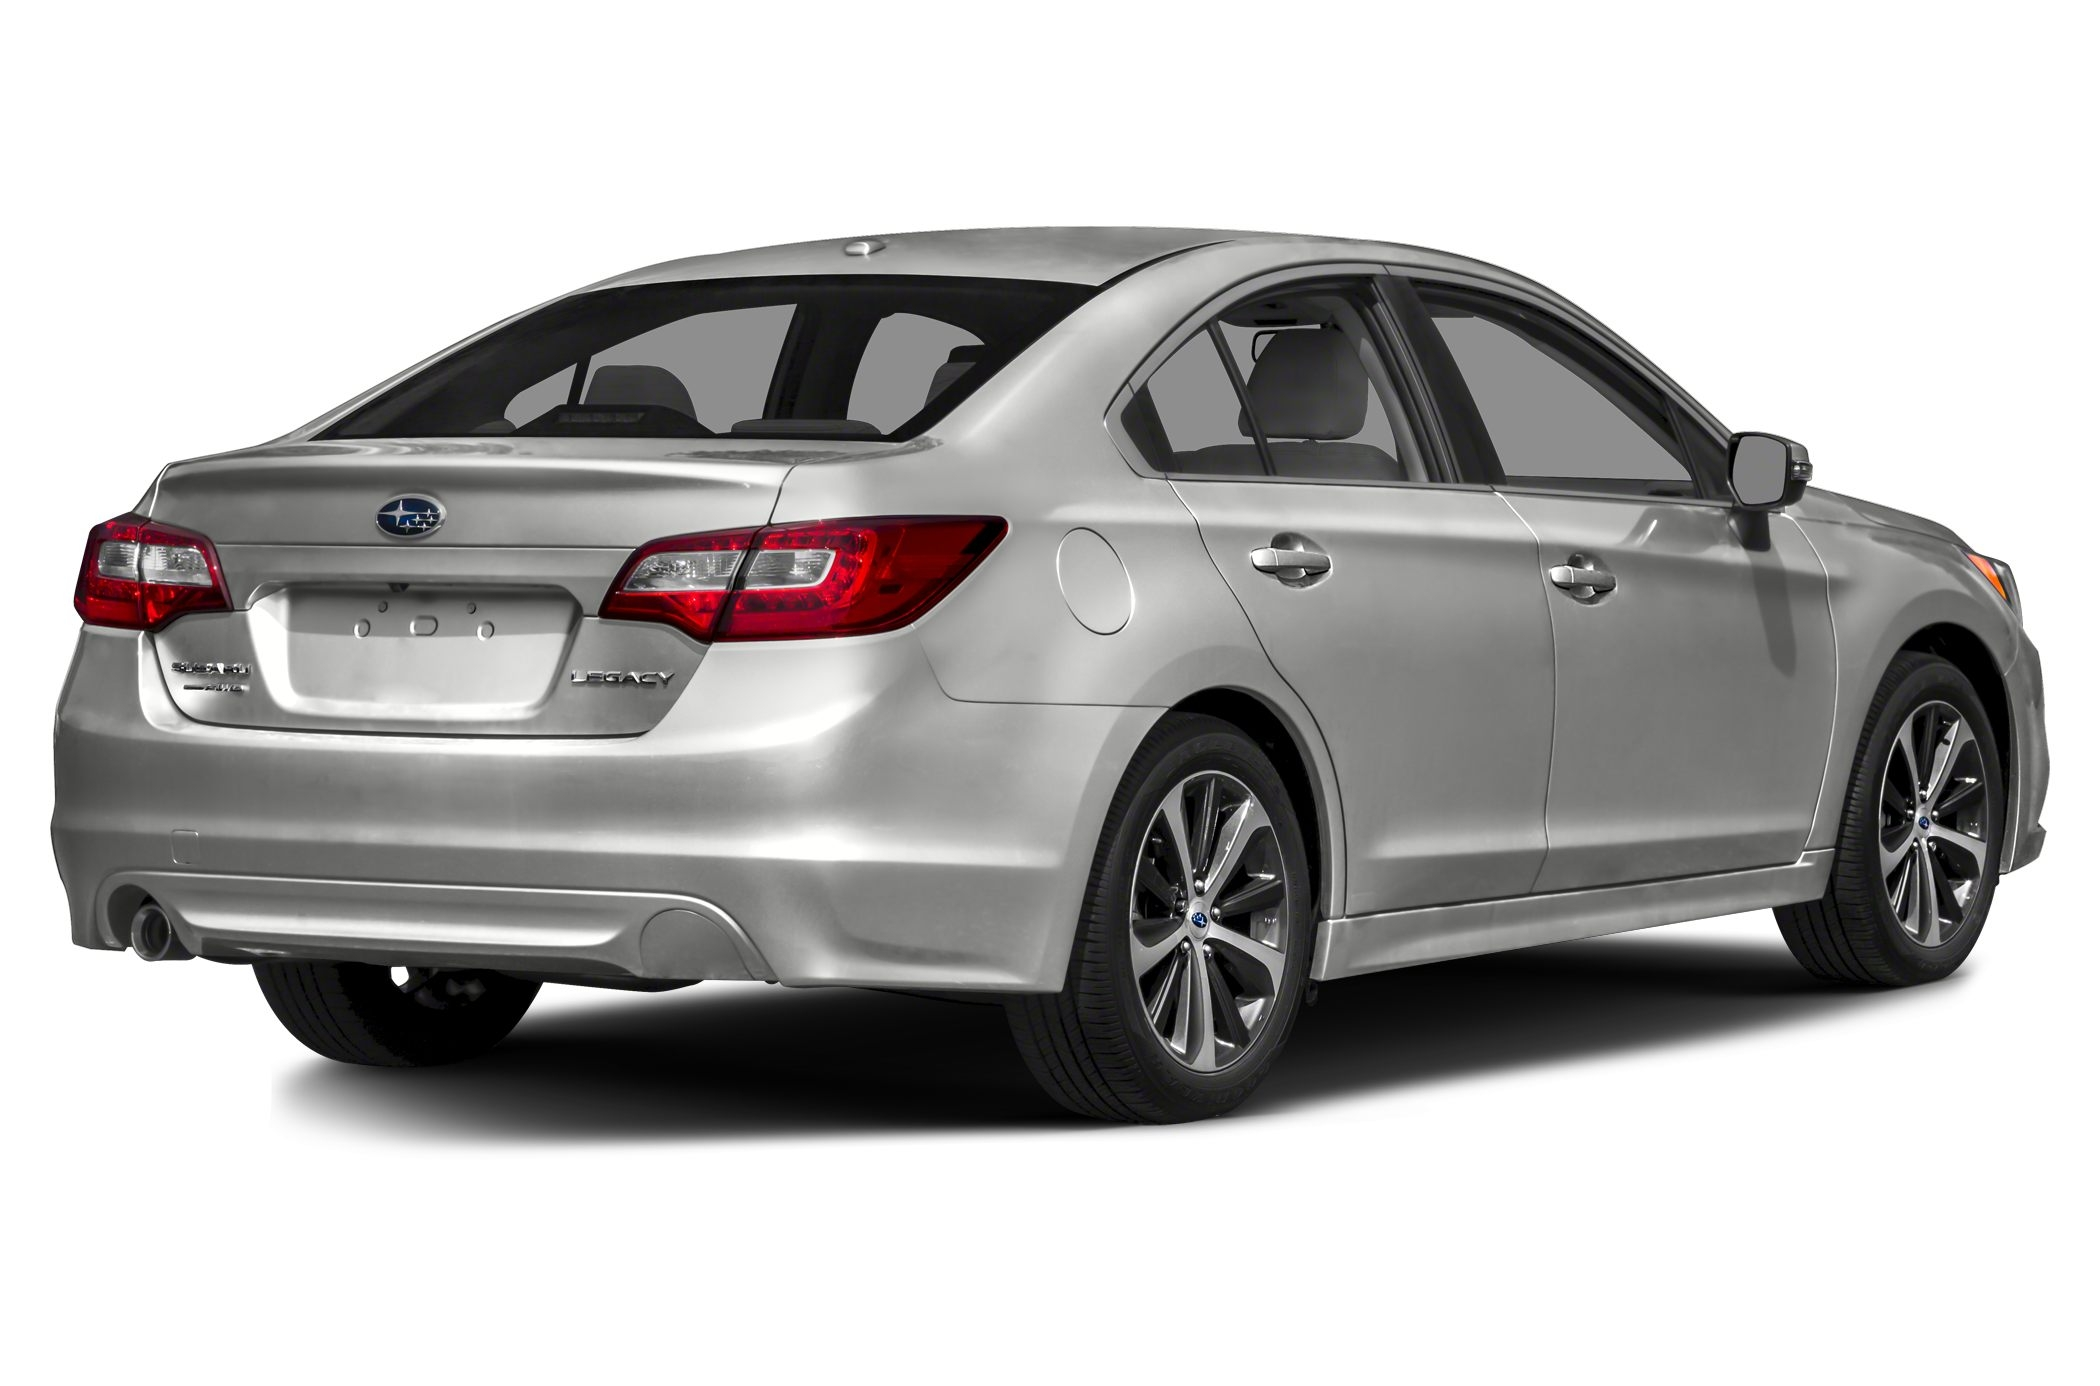 new 2016 subaru legacy   price, photos, reviews, safety ratings  subaru legacy invoice price